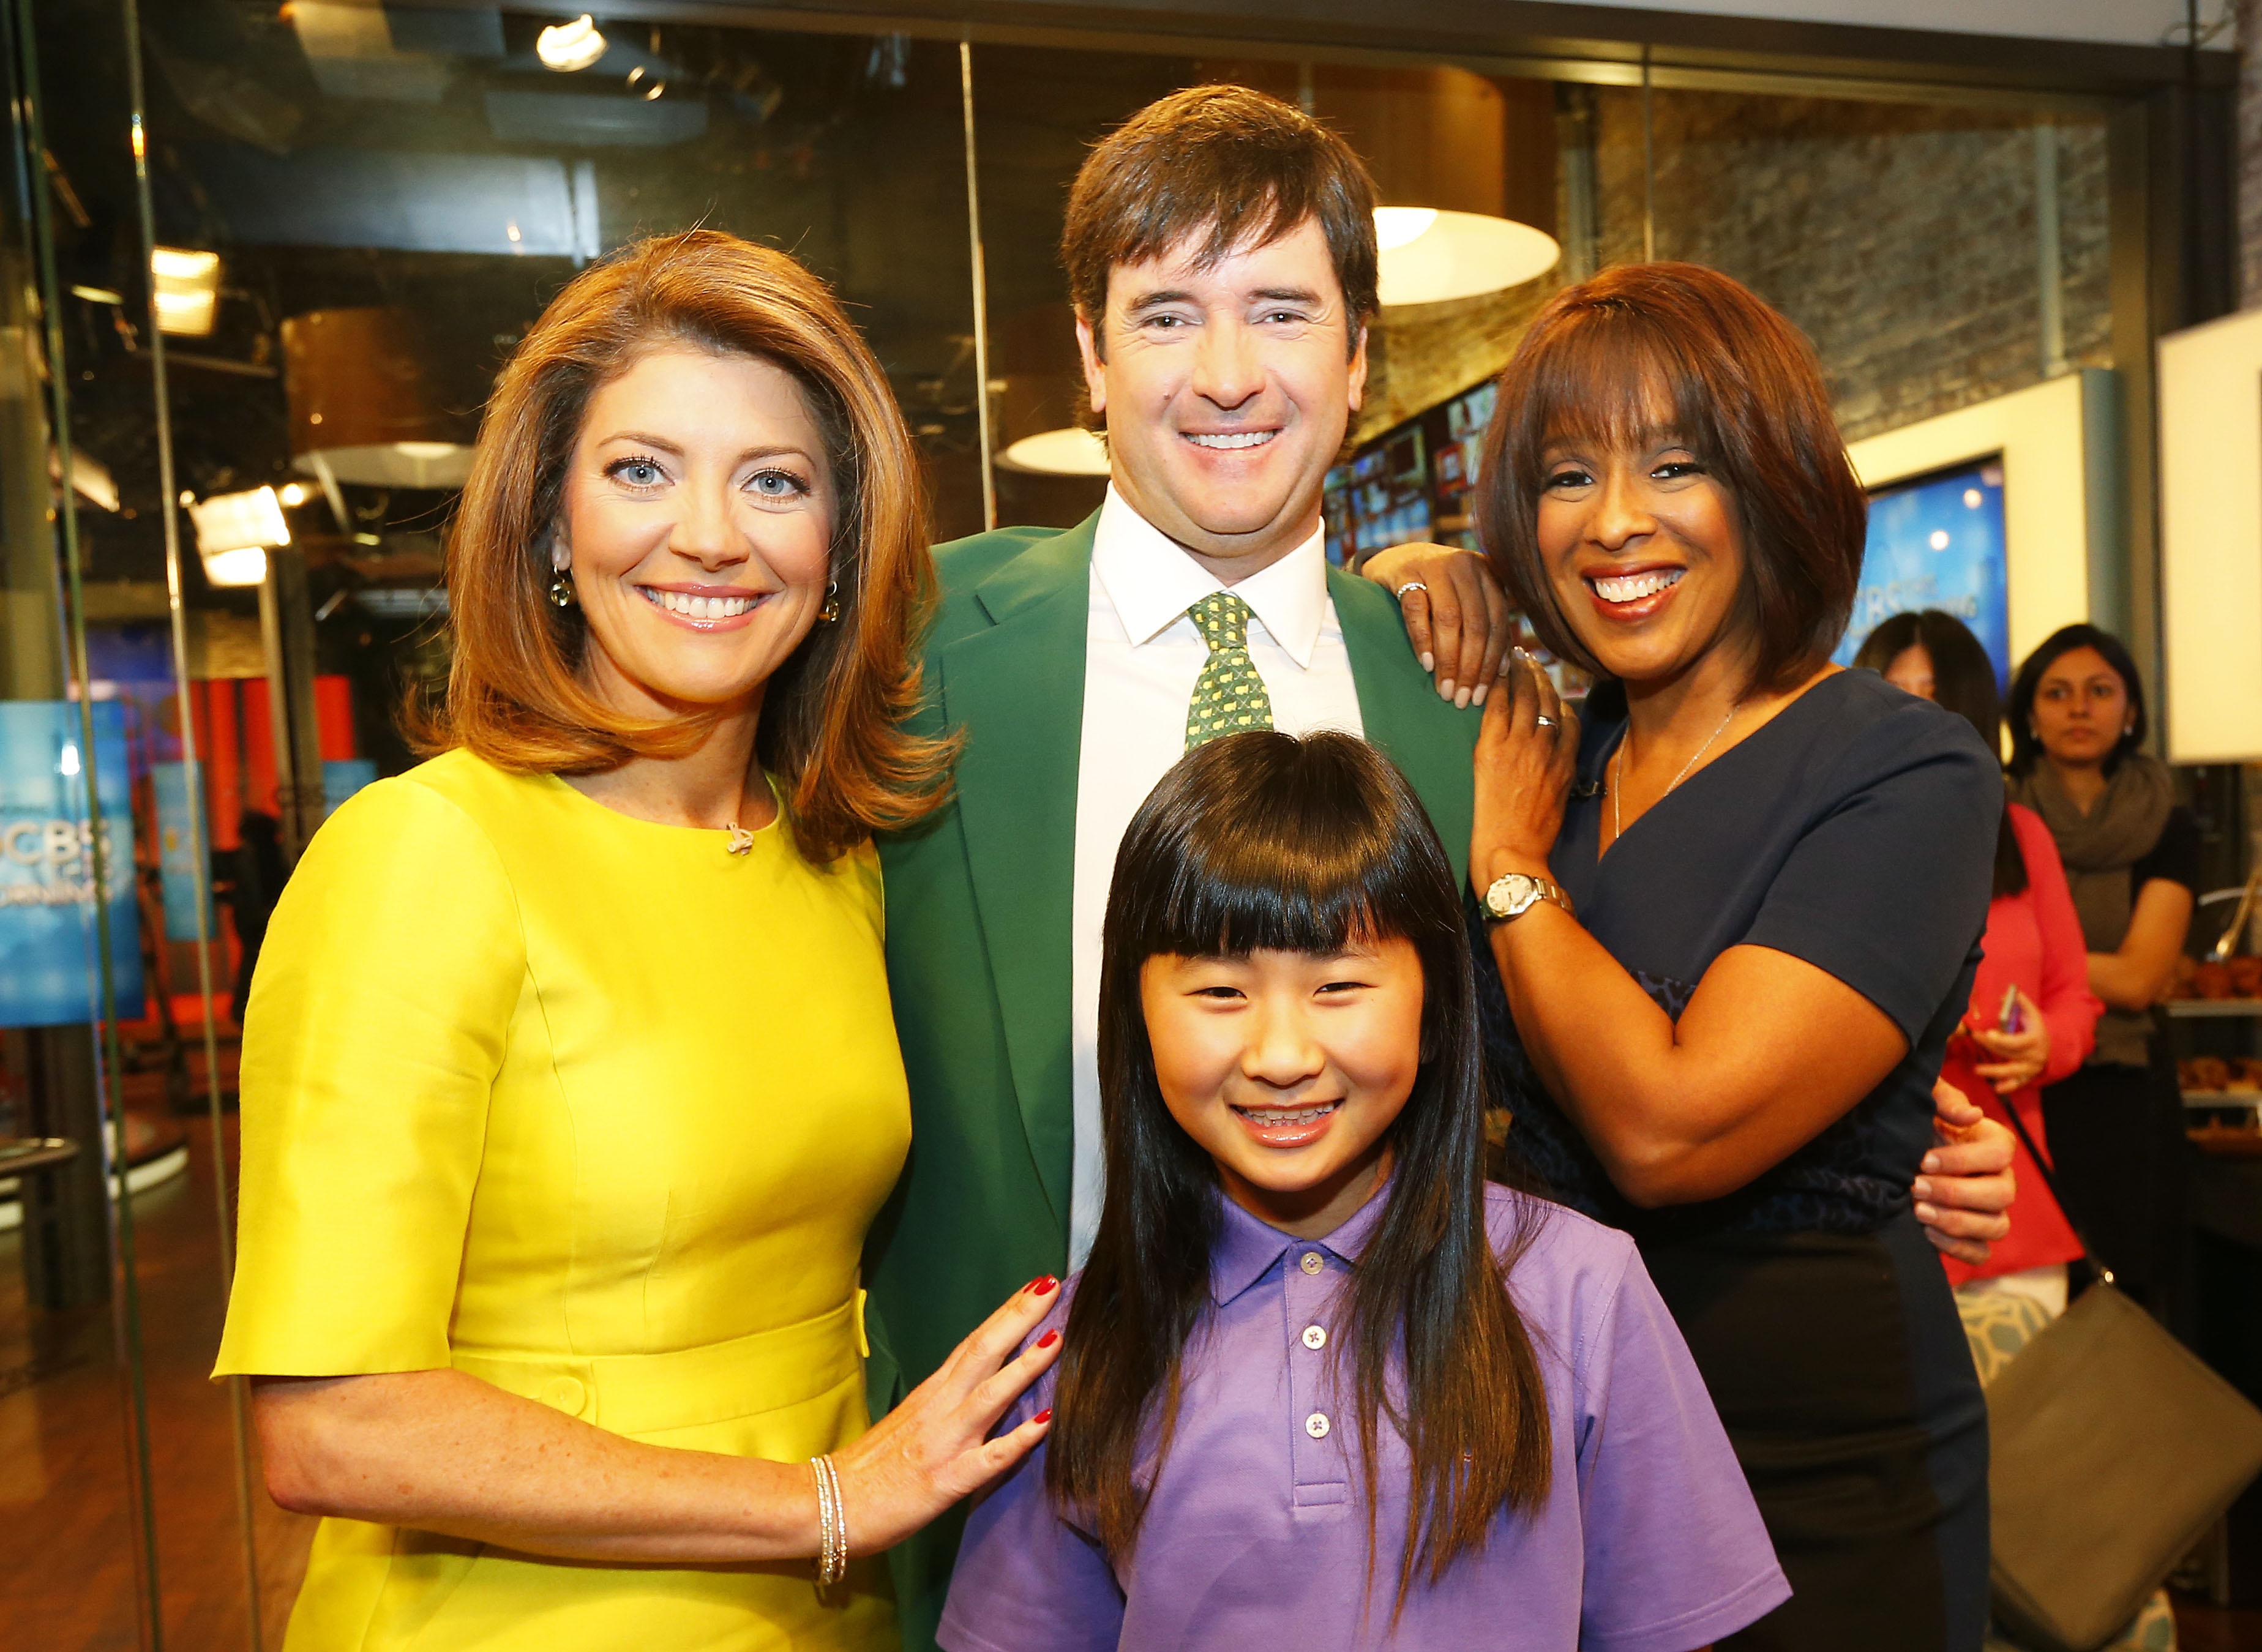 Two-time defending Masters Champion Bubba Watson and defending Drive, Chip & Putt National Champion, 10-year old Kelly Xu pose with Norah O'Donnell (L) and Gayle King (R) after their appearance on CBS This Morning at the CBS Broadcast Center on March 24, 2015 in New York City. Watson and defending Drive, Chip & Putt National Champion, 10-year old Kelly Xu are in New York City to promote registration for the Drive, Chip & Putt championship. (Photo by Mike Stobe/Getty Images for the DC&P Championship)